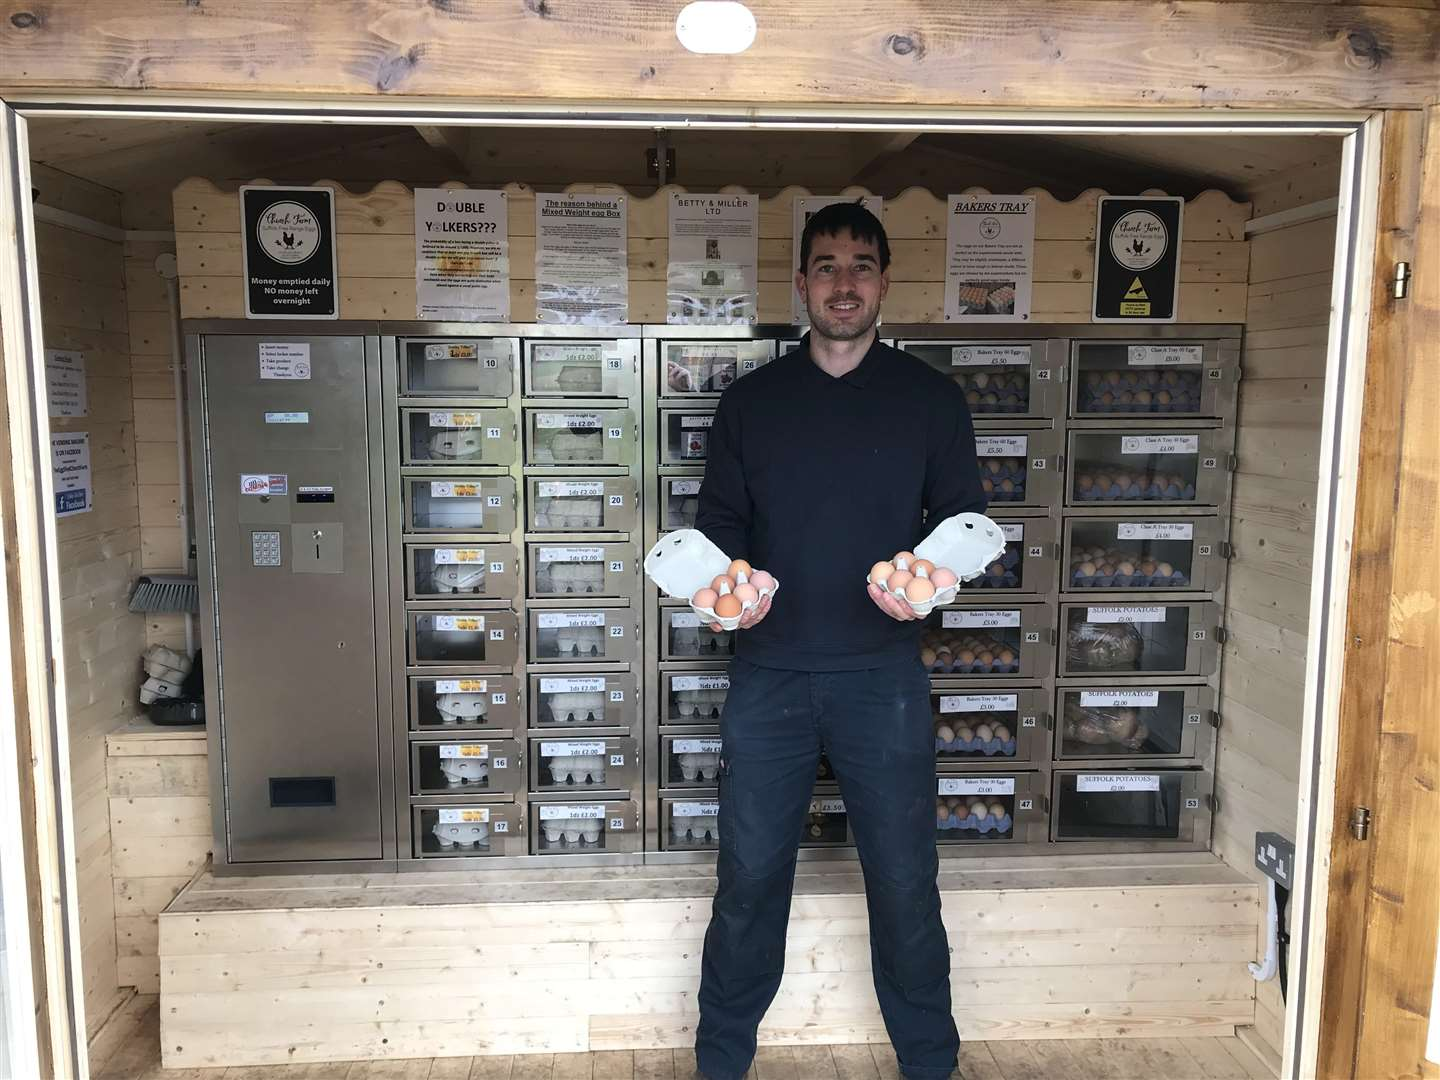 EGG-CELLENT: Chris Hull shows off the fresh produce, which is in individual vending machine lockers, only unlocking after payment.